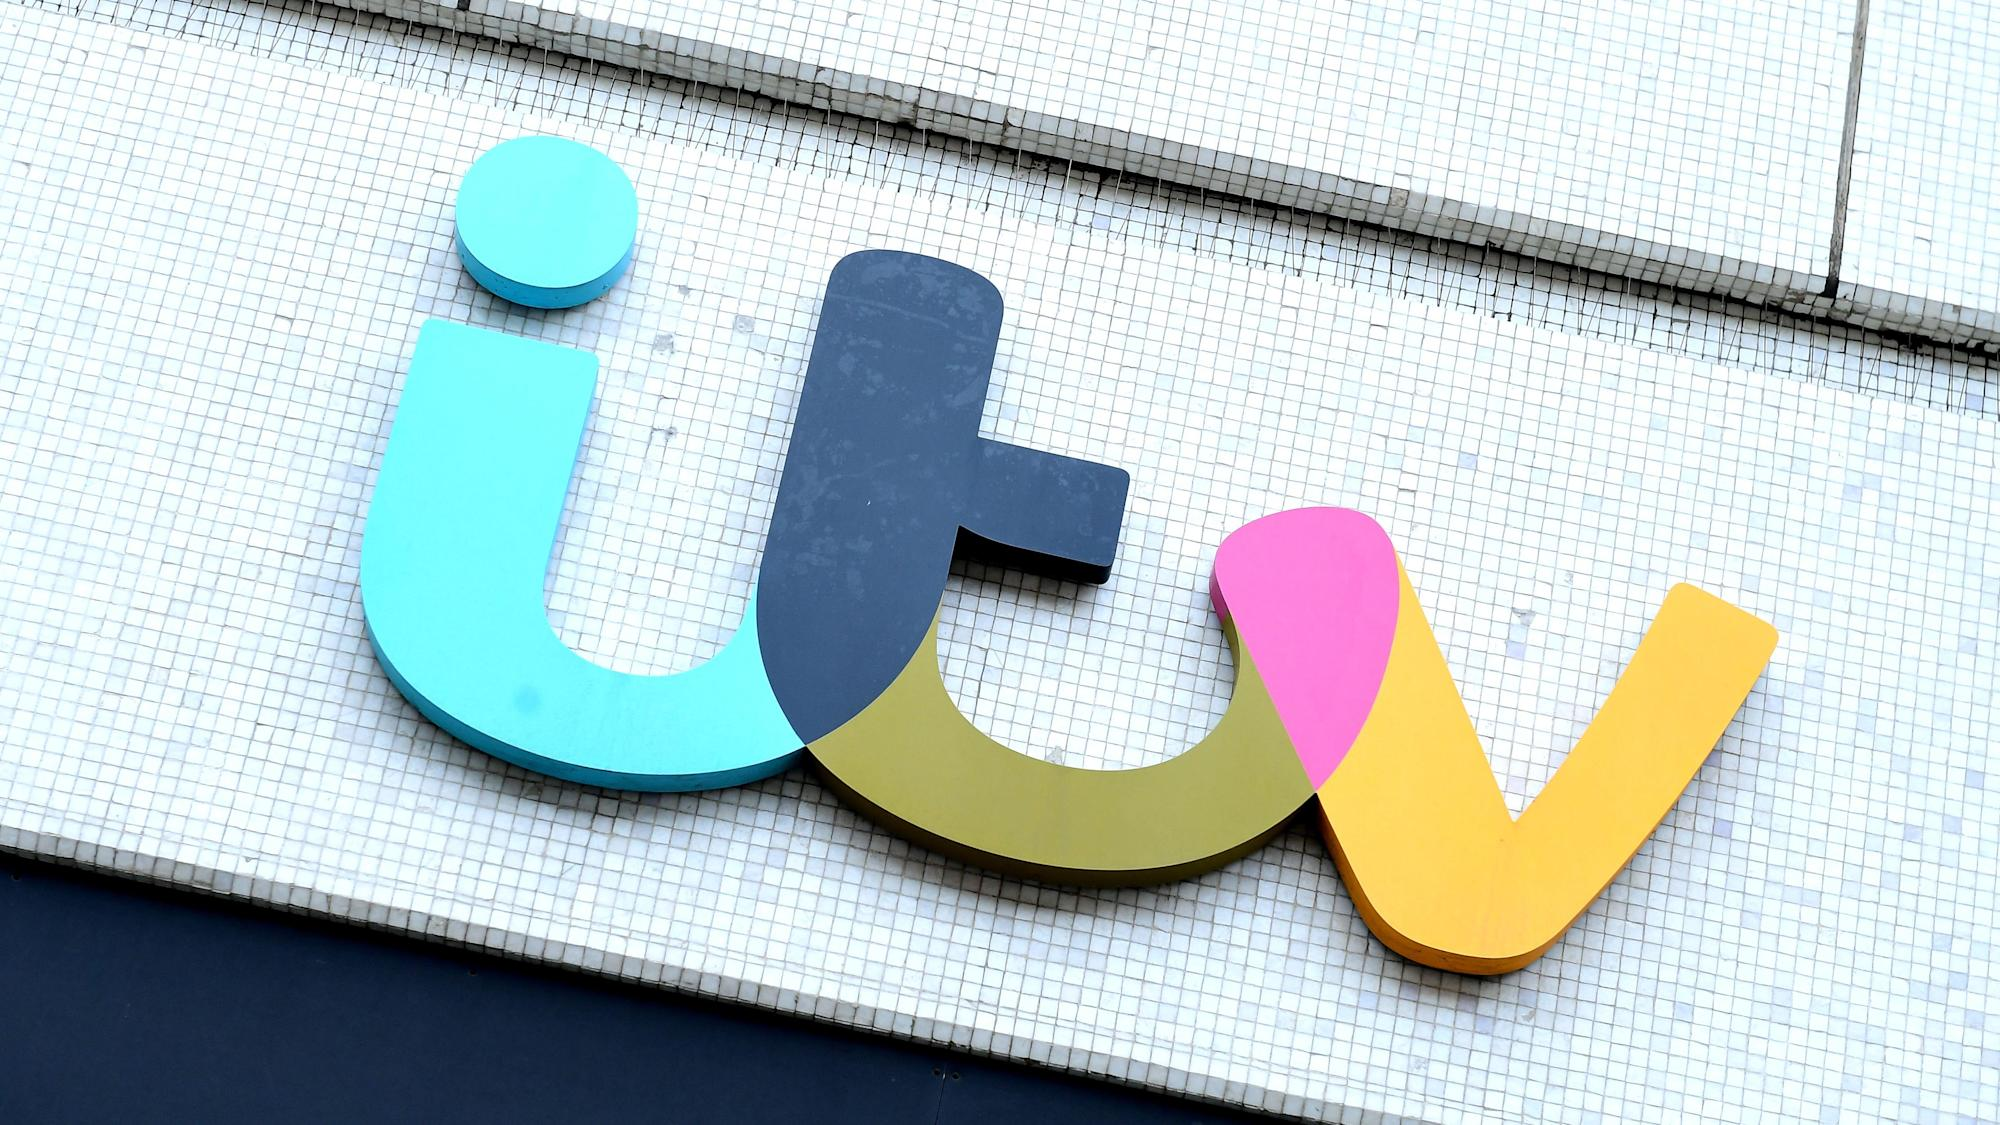 ITV 'cautiously optimistic' as advertising revenues rebound